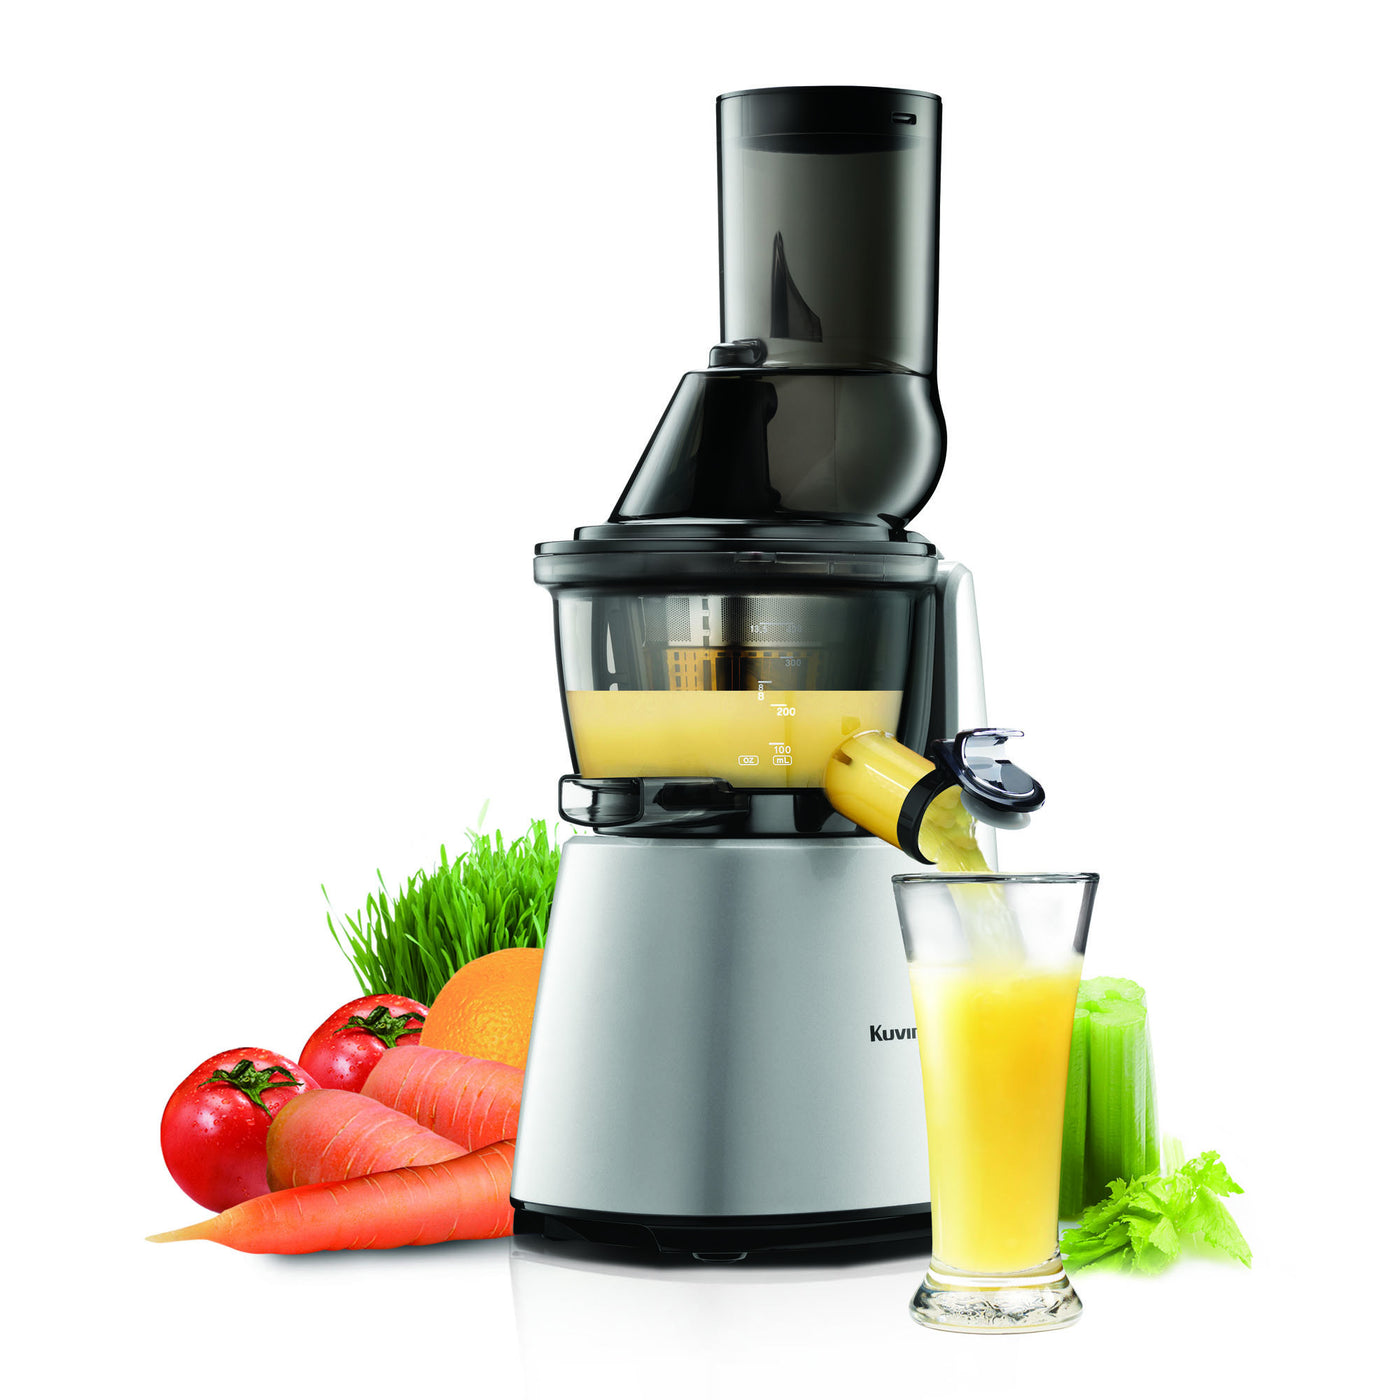 Kuvings Slow Juicer C7000 : Kuvings Elite Whole Slow Juicer C7000 Juicerville